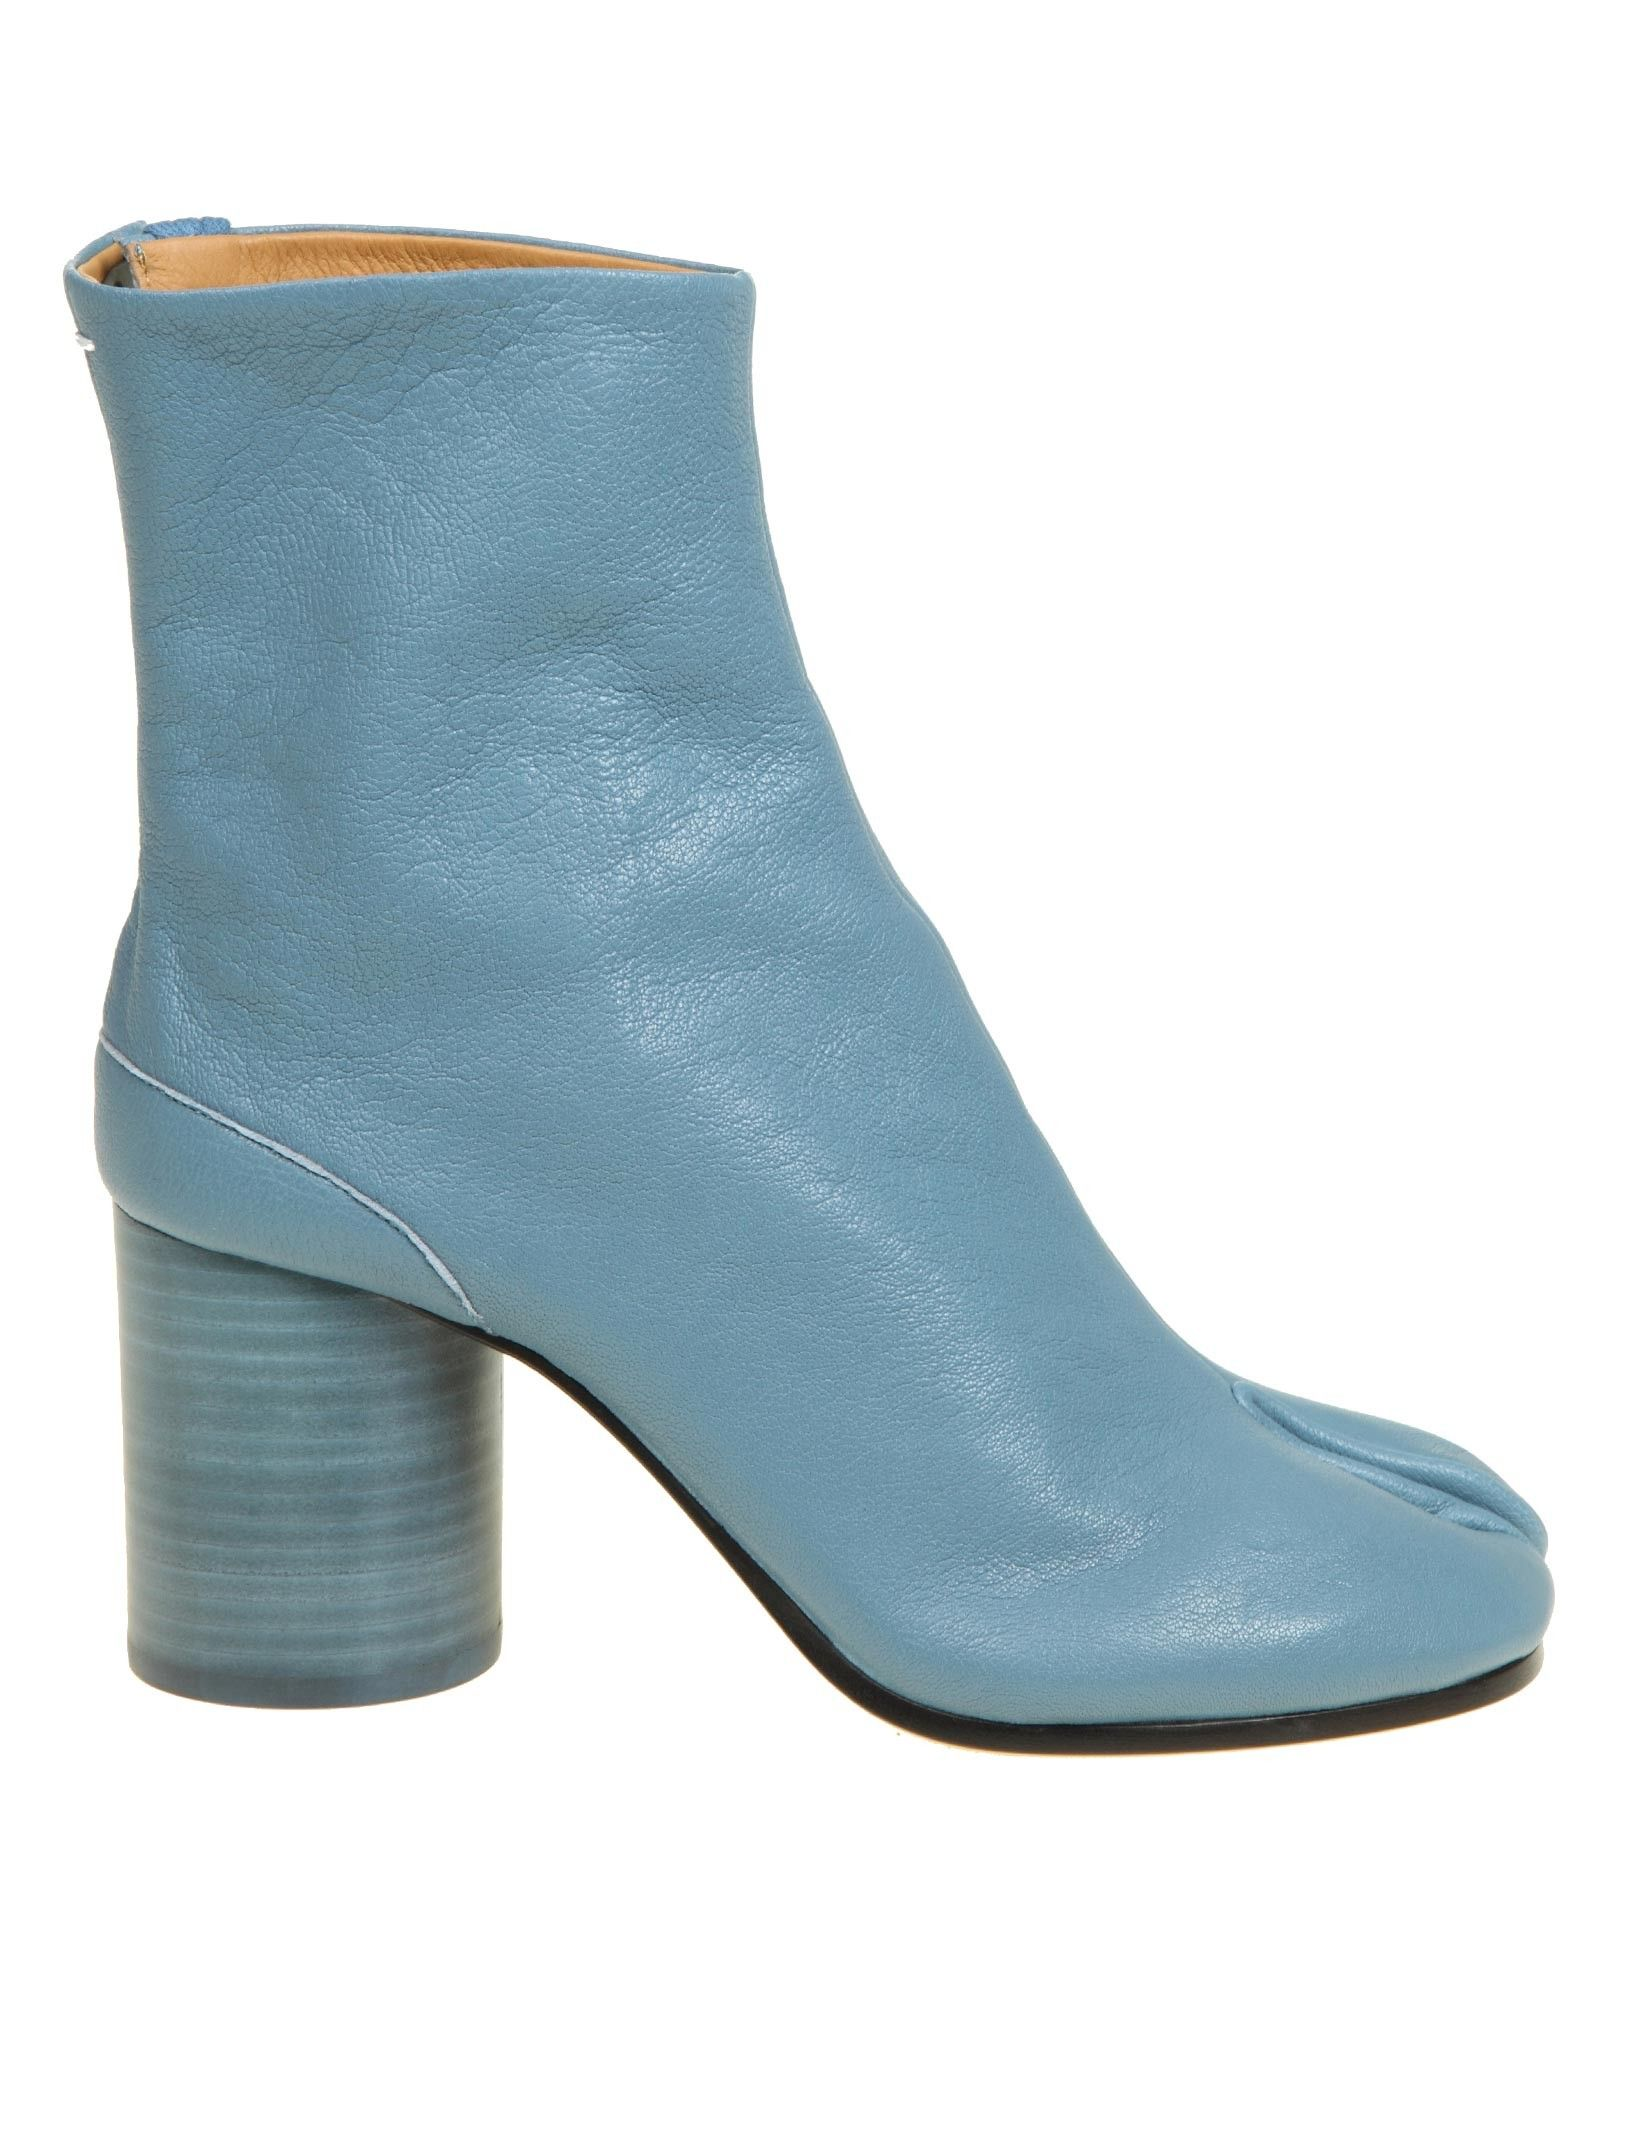 Maison Margiela MAISON MARGIELA WOMEN'S S58WU0260P3753T605 LIGHT BLUE LEATHER ANKLE BOOTS